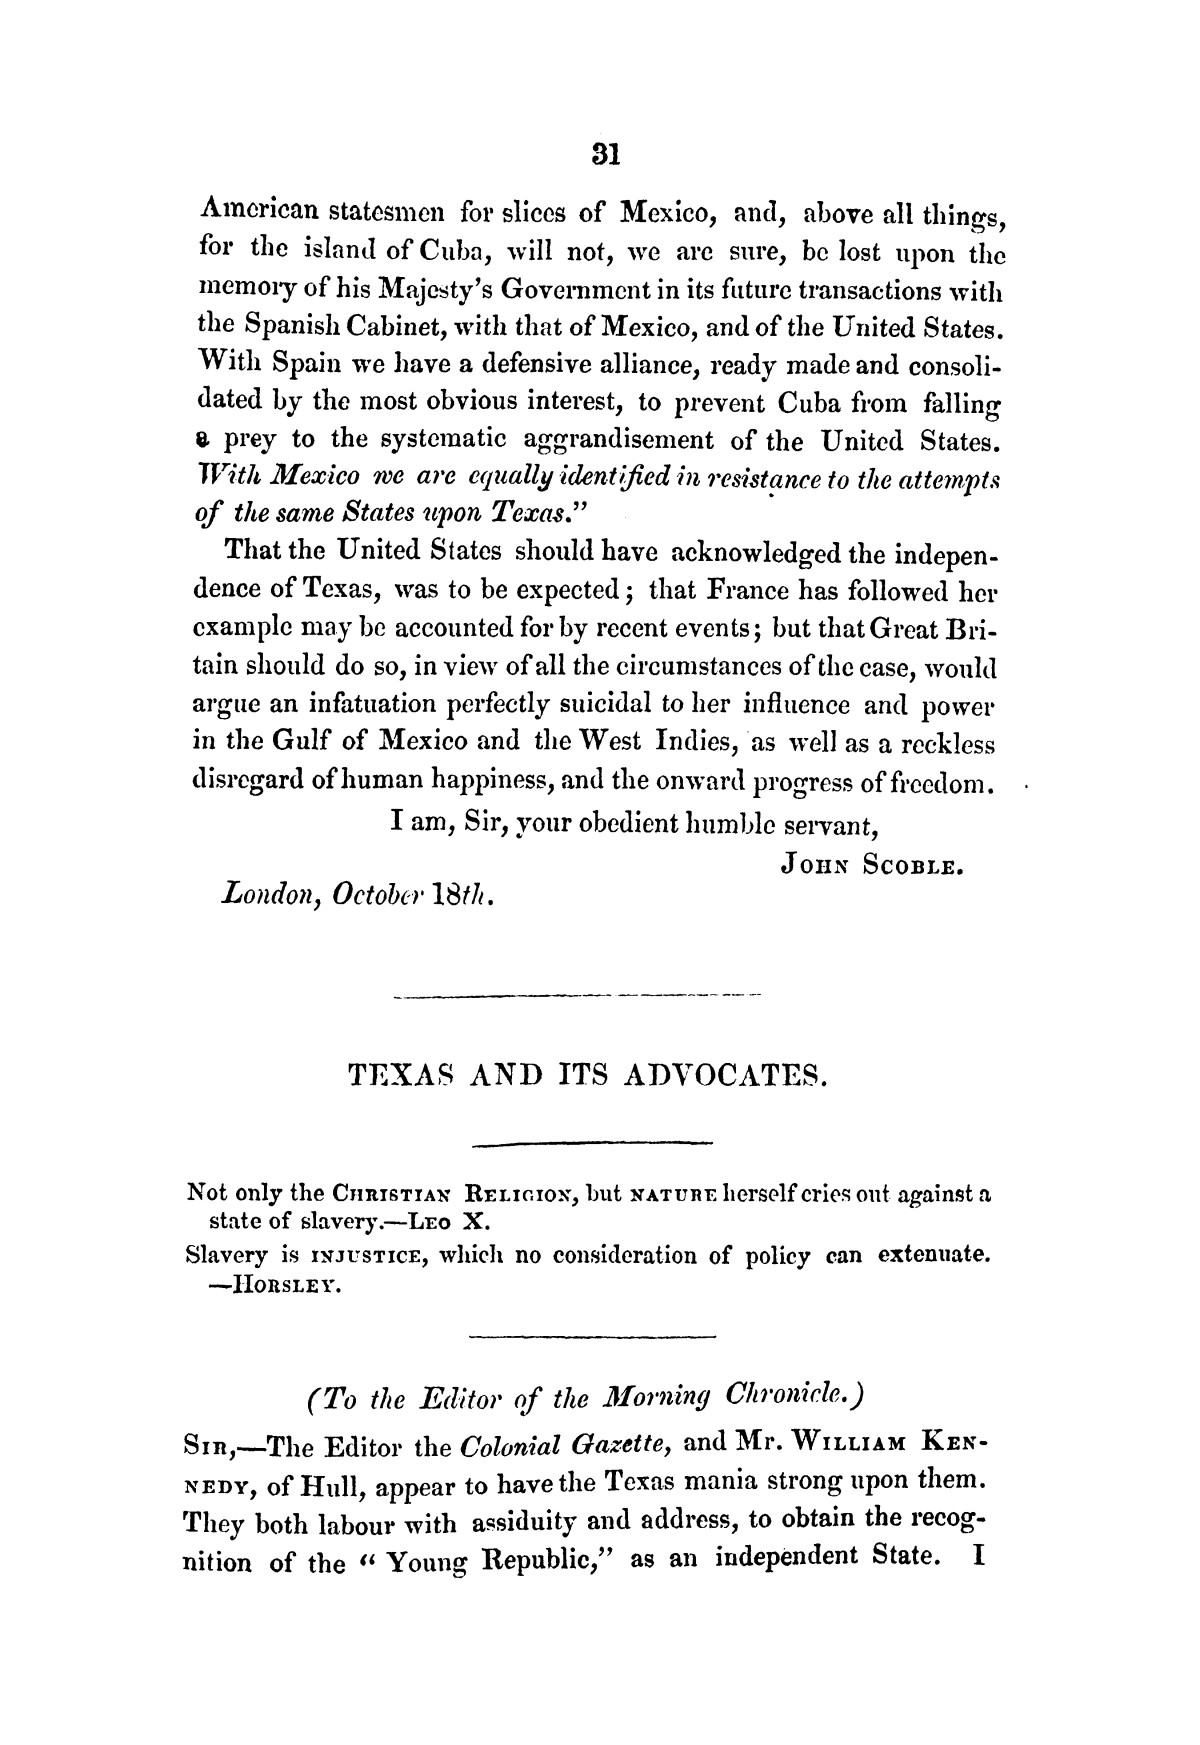 Texas, its claims to be recognised as an independent power by Great Britain : examined in a series of letters                                                                                                      [Sequence #]: 33 of 58